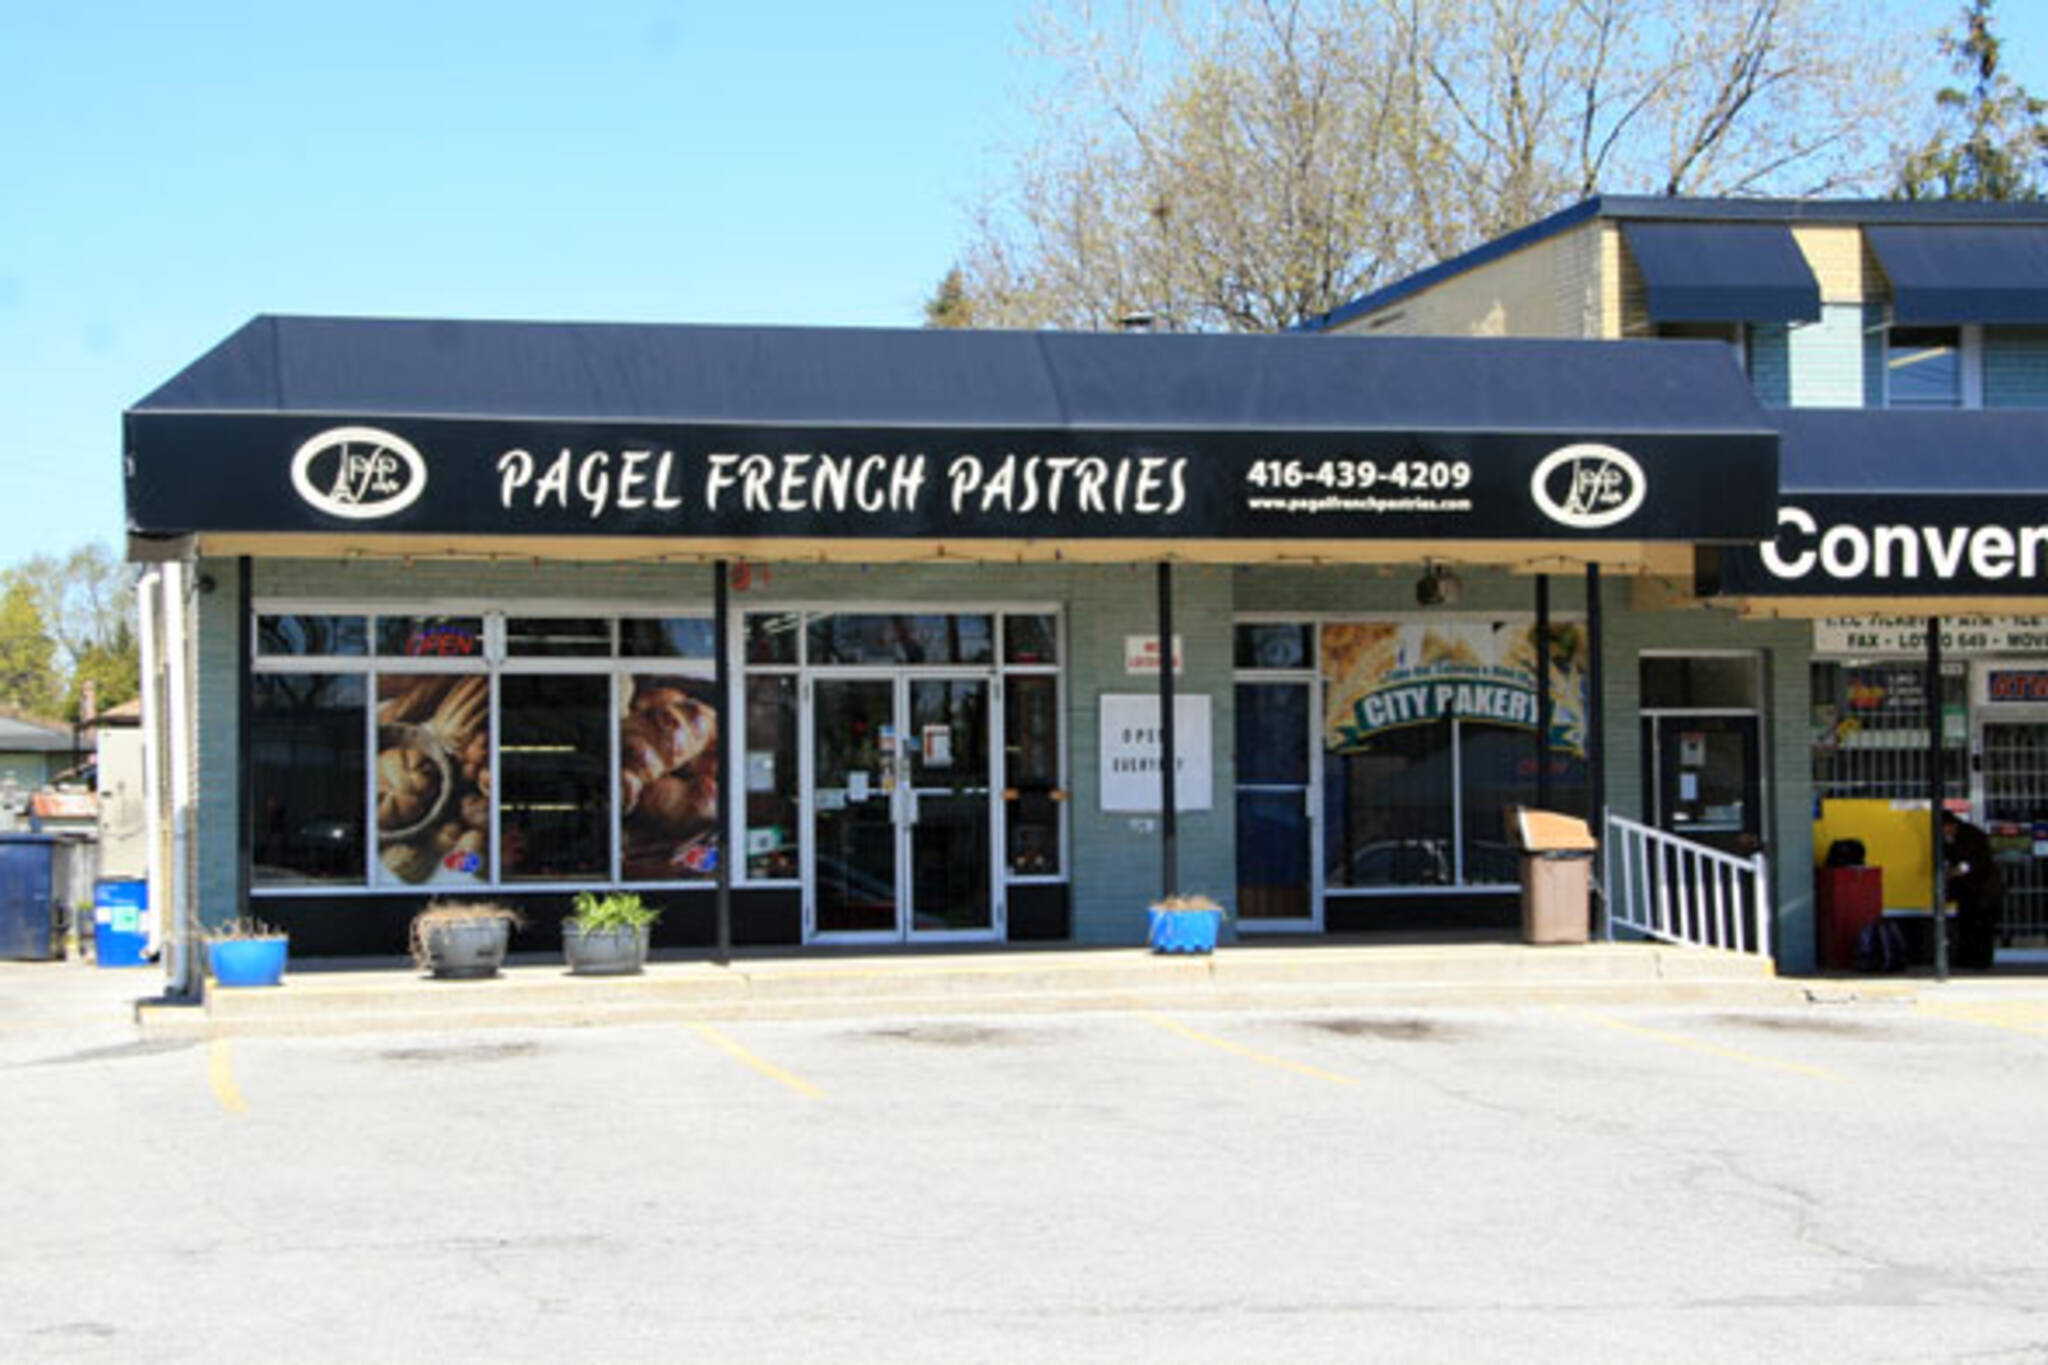 Pagel French Pastries